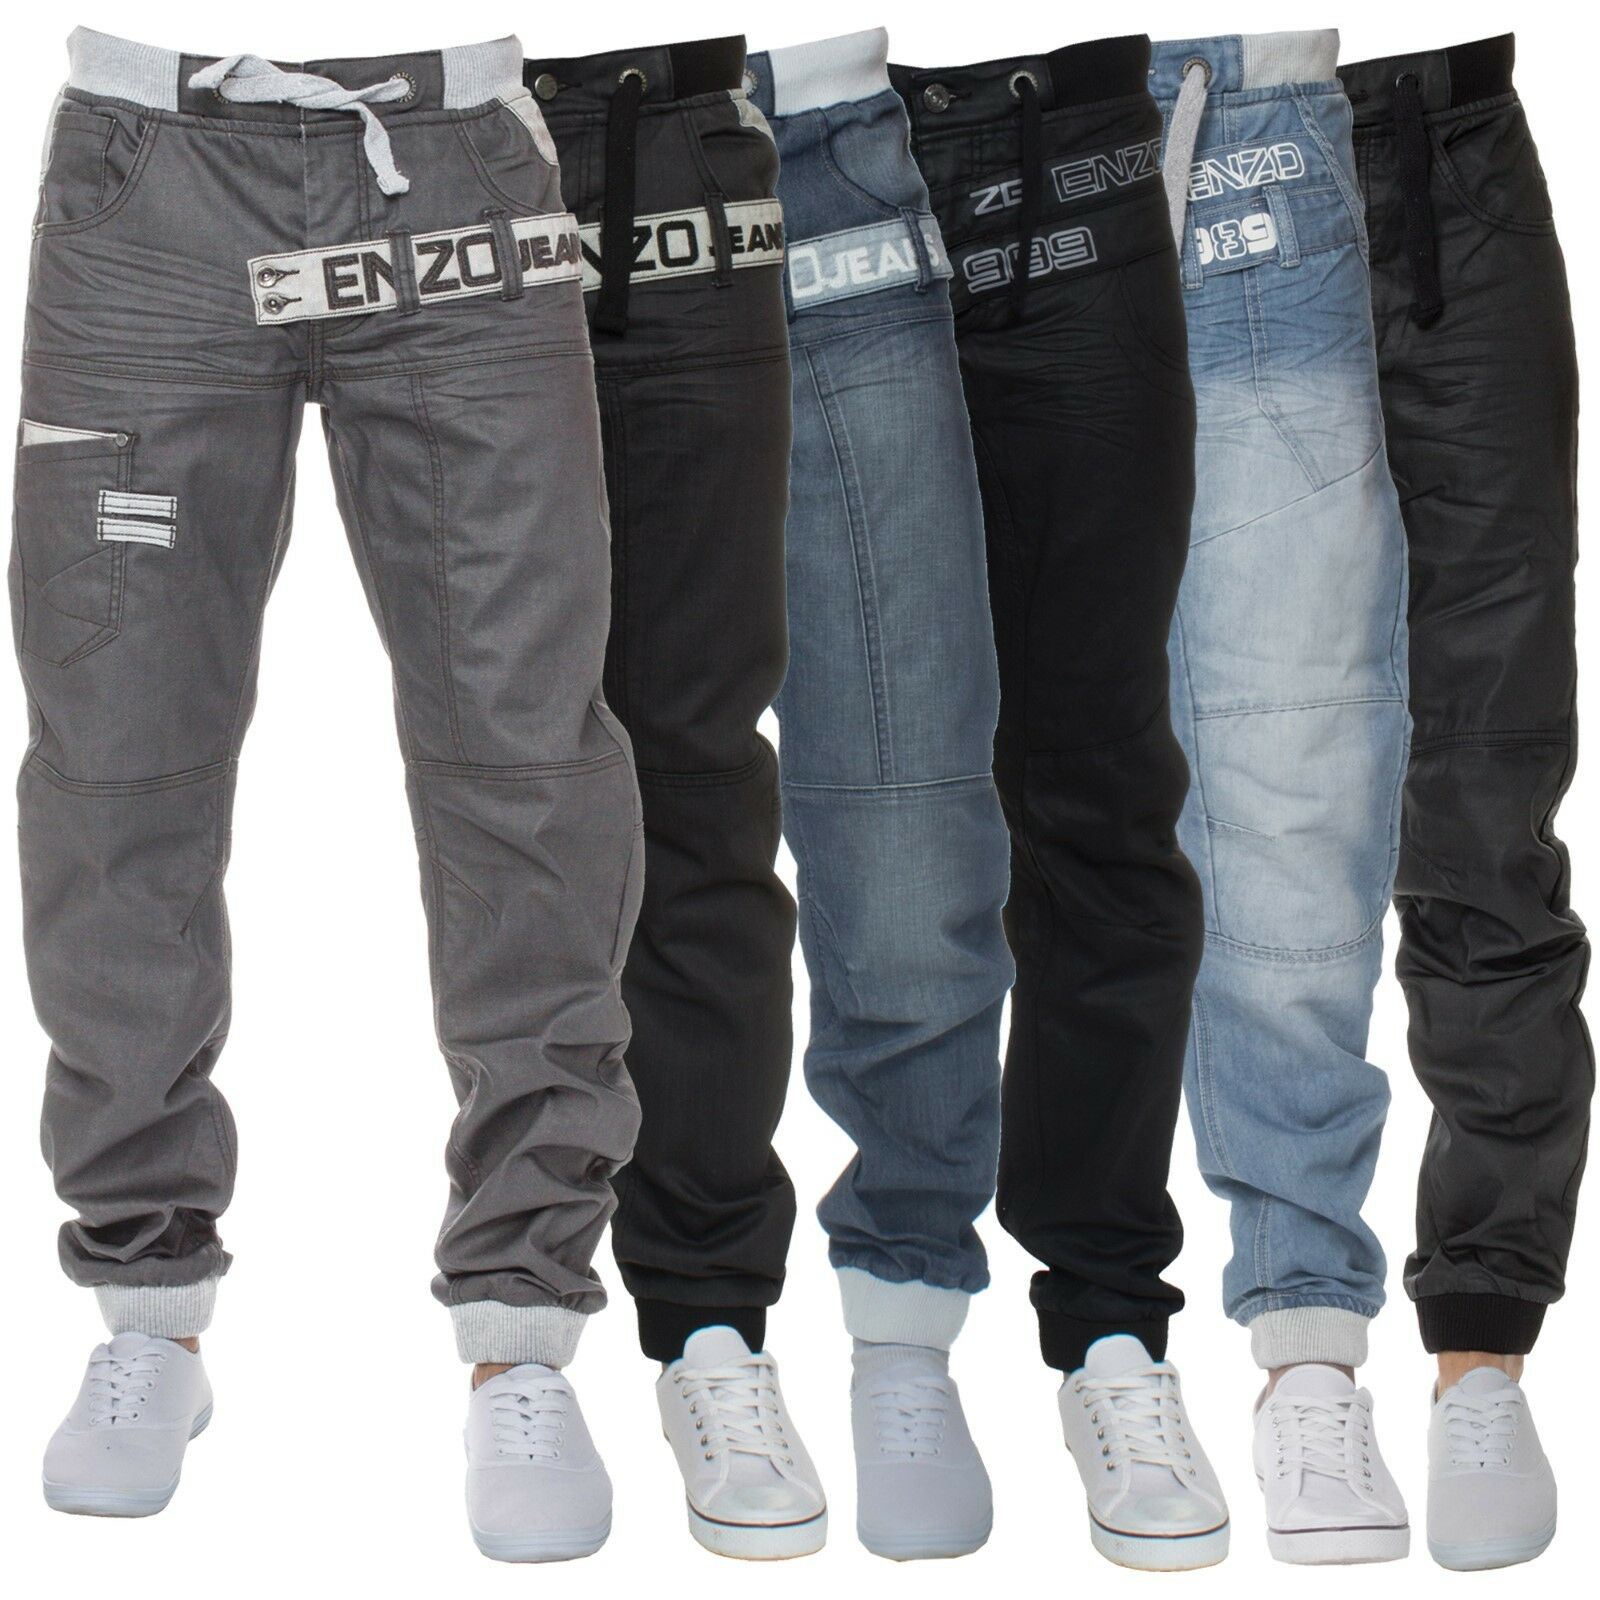 Men's Designer Cuffed Jogger Jeans Denim Pants Bottoms Enzo New Mens Cuffed Denim Joggers Jeans Black Fashion All Big King Sizes out of 5 stars £ - £ Kruze Designer Mens Cuffed Jeans Elasticated Waist Jogger Style Denim Pants out of 5 stars /5.